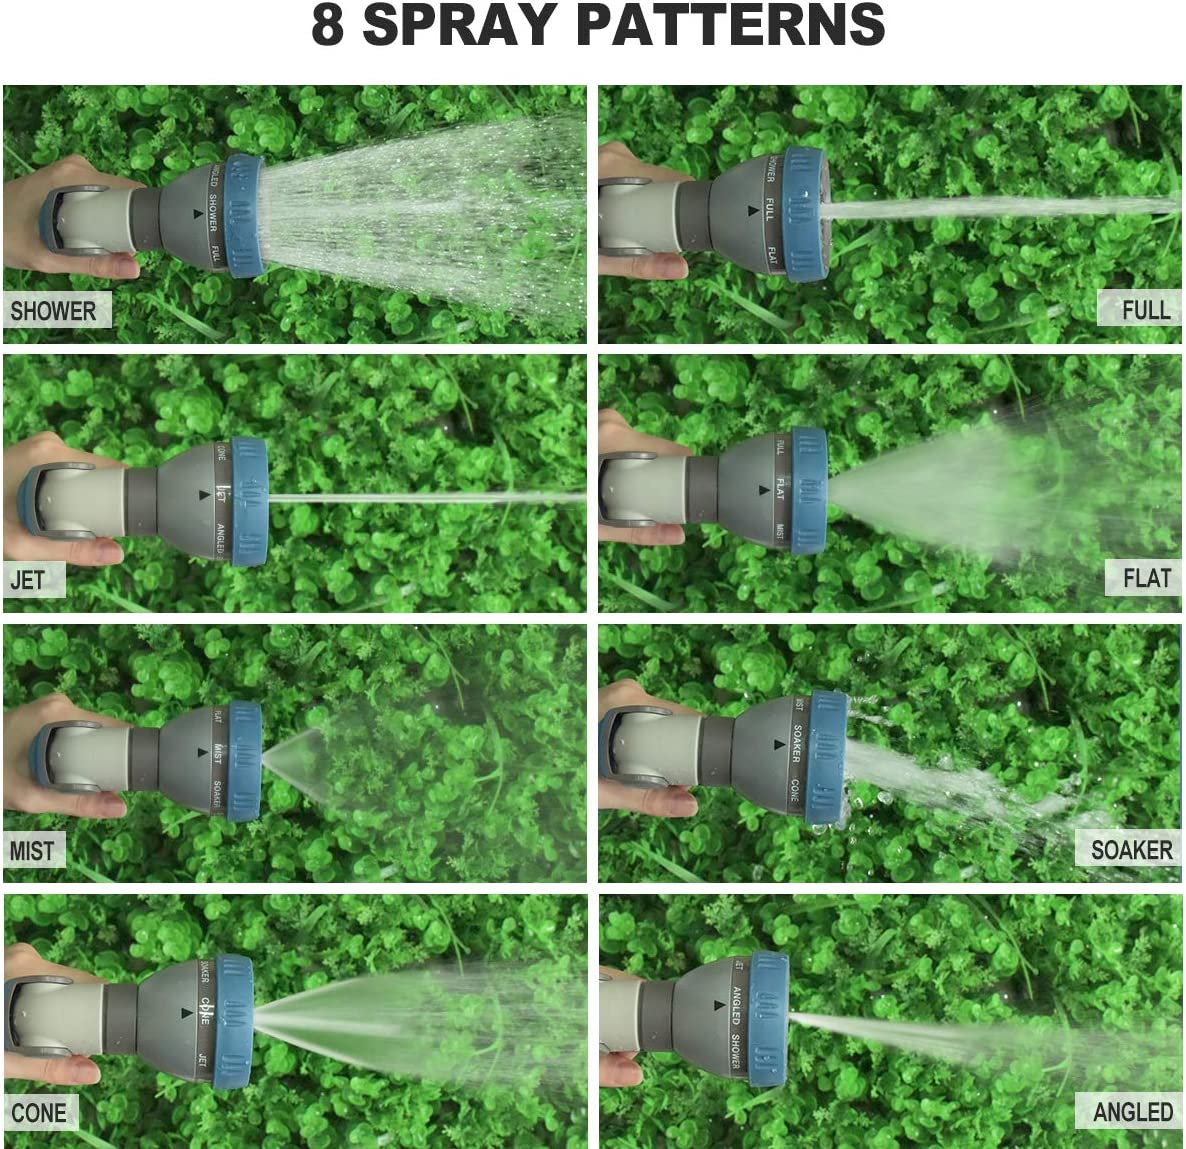 style in 1 pattern: This high pressure garden hose nozzle water spray